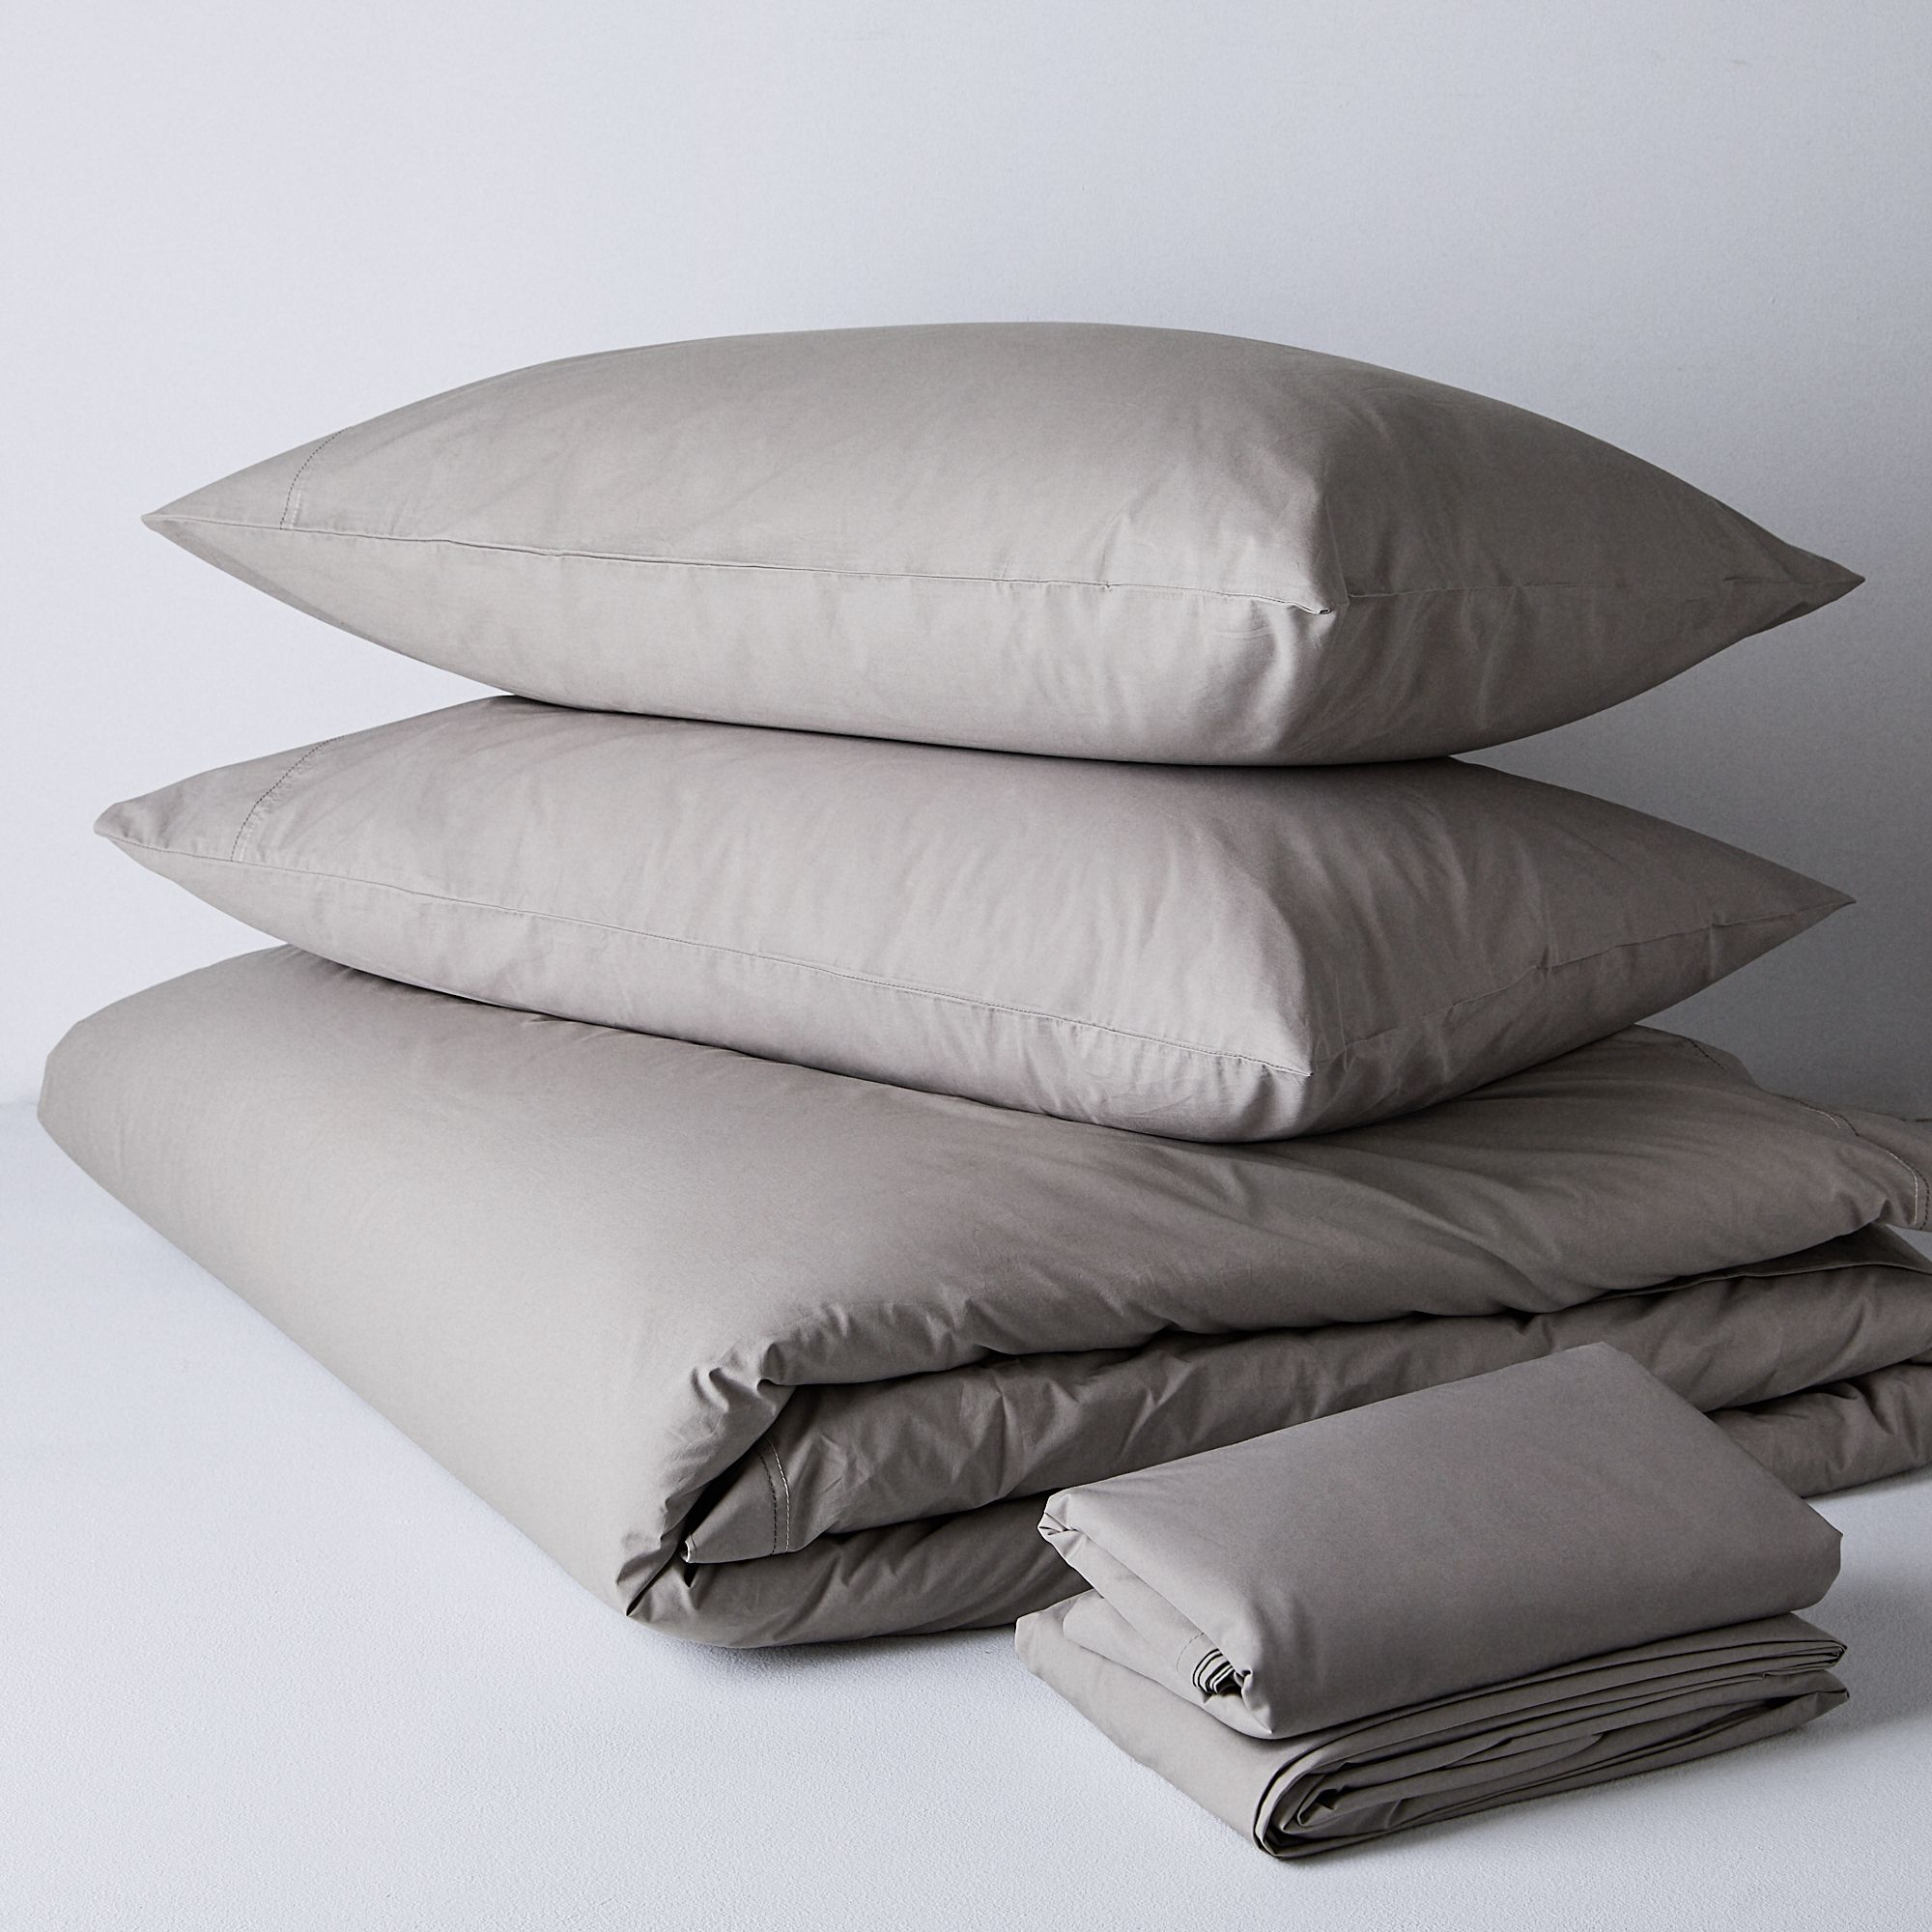 Get The Alterra Pure Organic Percale Duvet Cover Pebble Grey Queen Duvet Traditionalist Sheet Set From Food52 Now Accuweather Shop